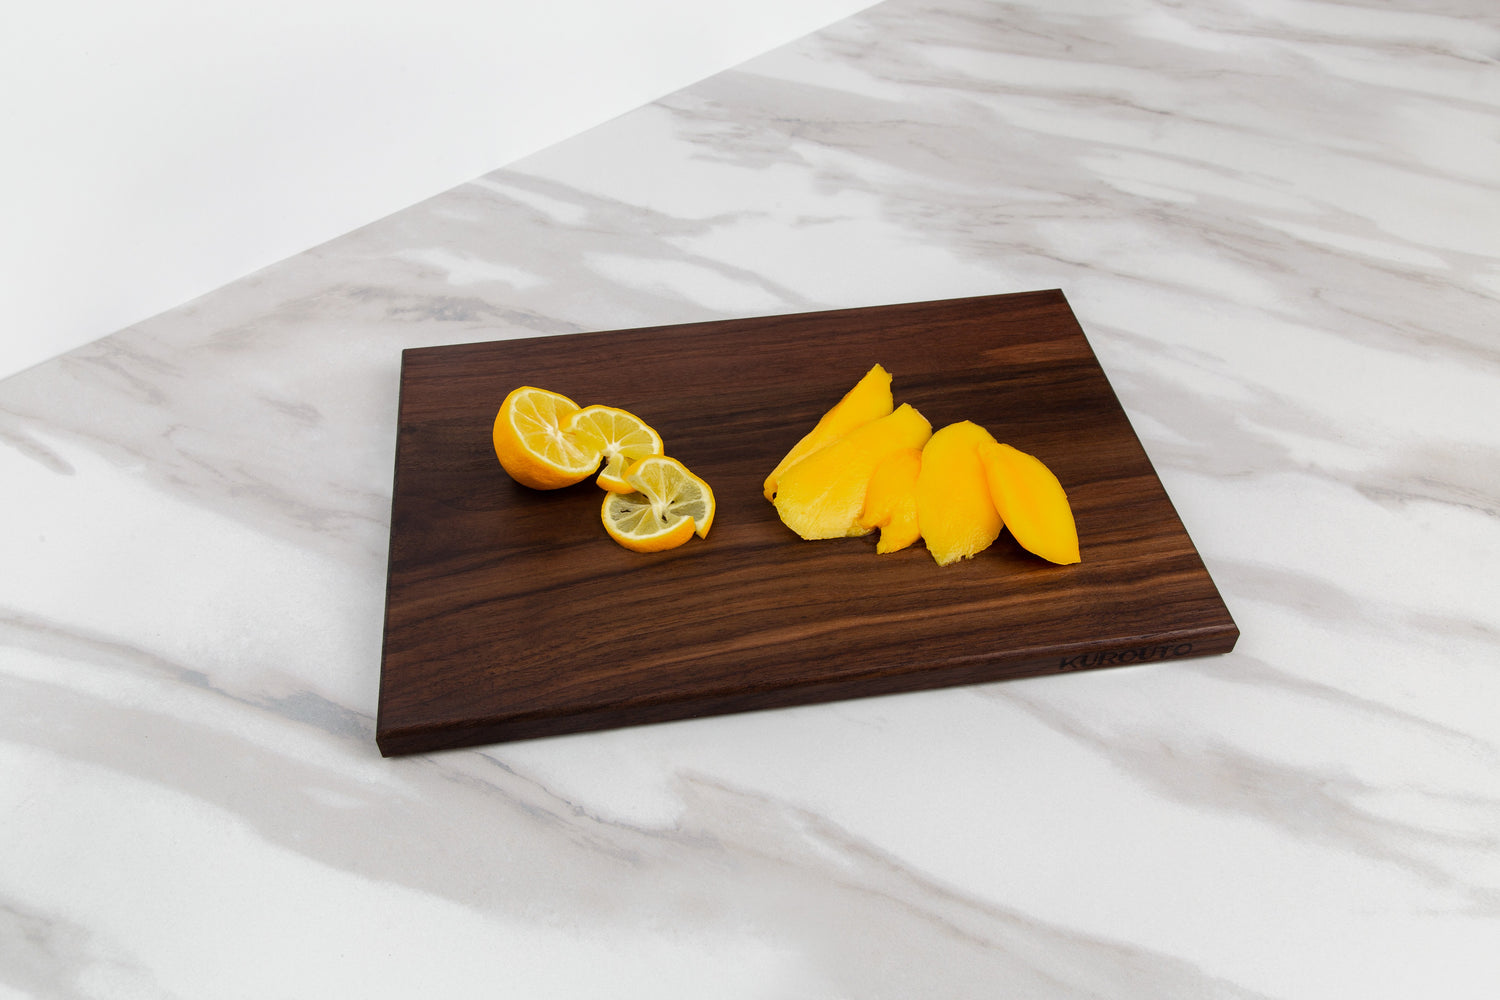 Edge Grain Walnut Cutting Board (12 x 8 x .75 Inches)